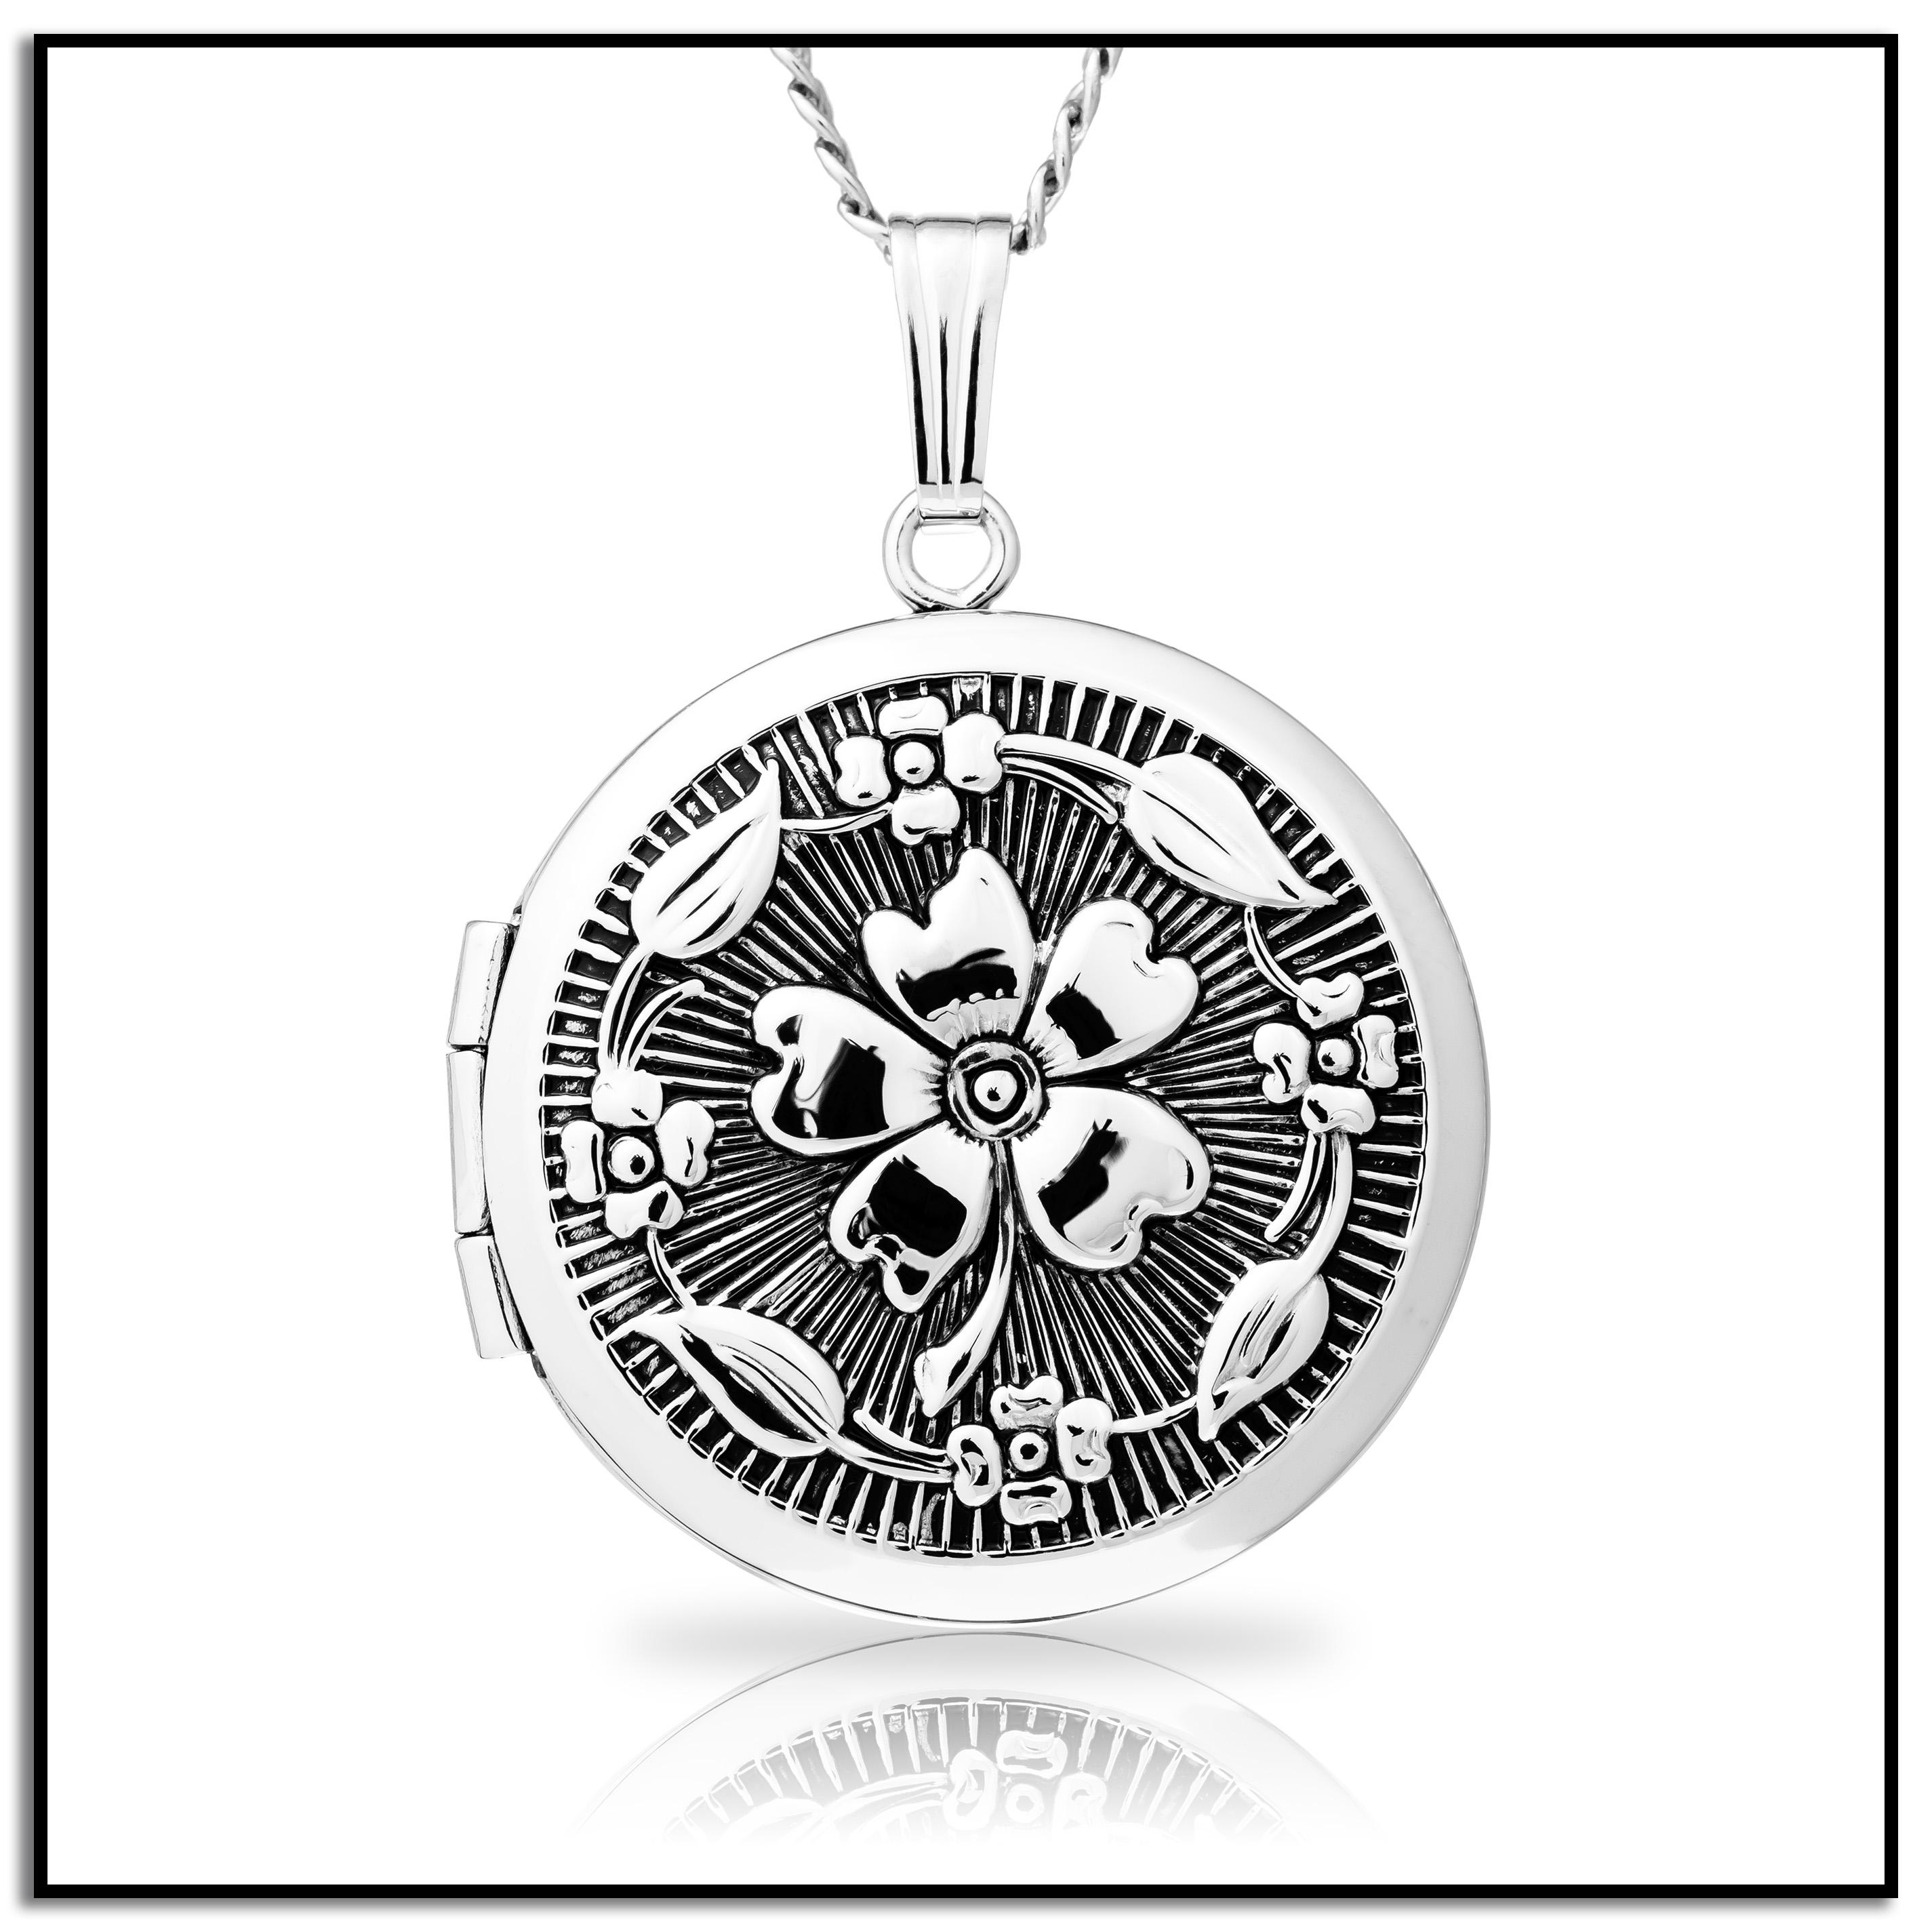 silver breastfeeding ryo image collectionn locket large steel keepsake by stainless fortune collections symbol lockets